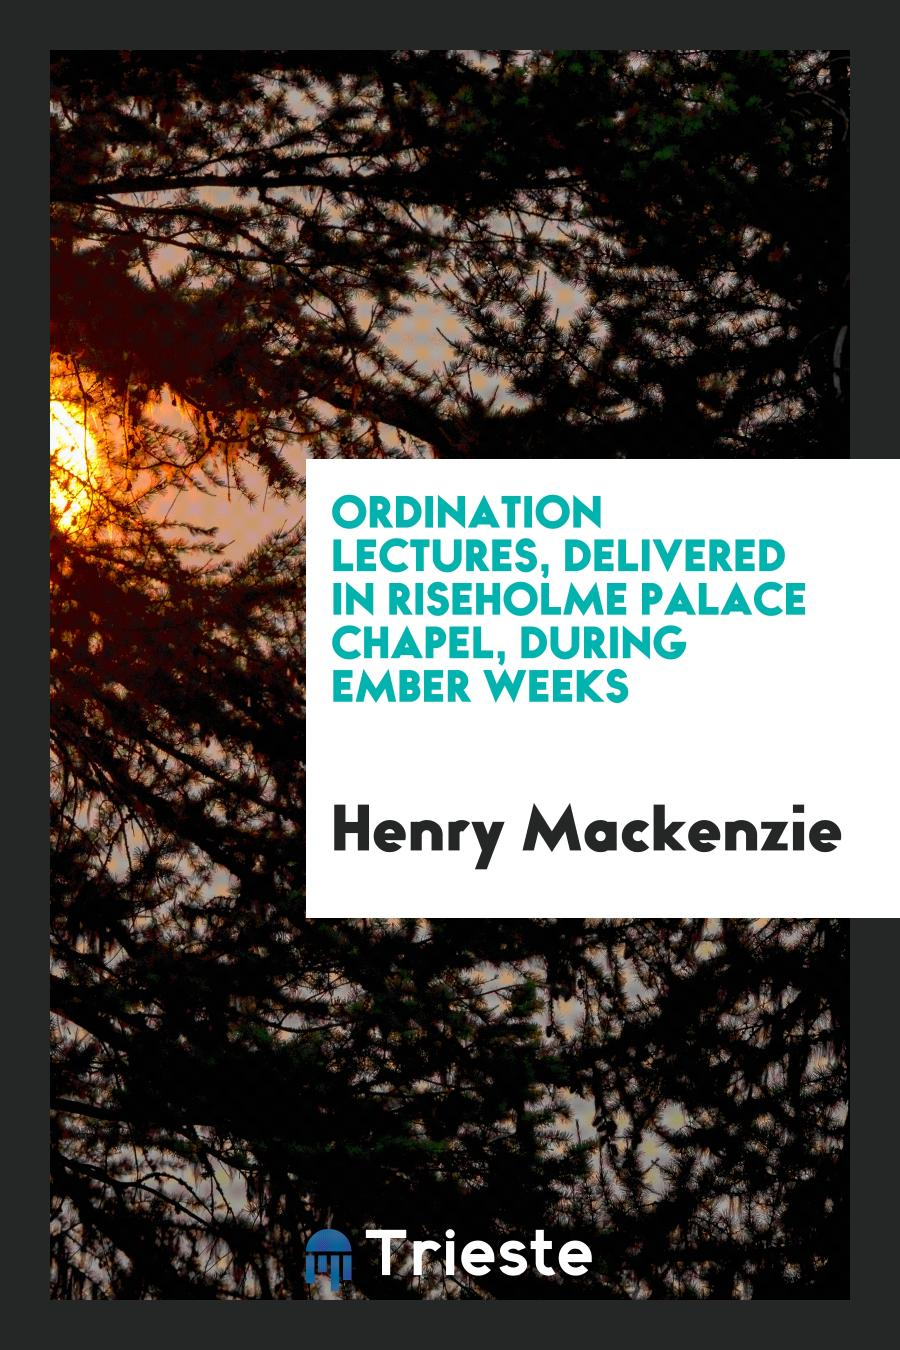 Henry Mackenzie - Ordination Lectures, Delivered in Riseholme Palace Chapel, During Ember Weeks